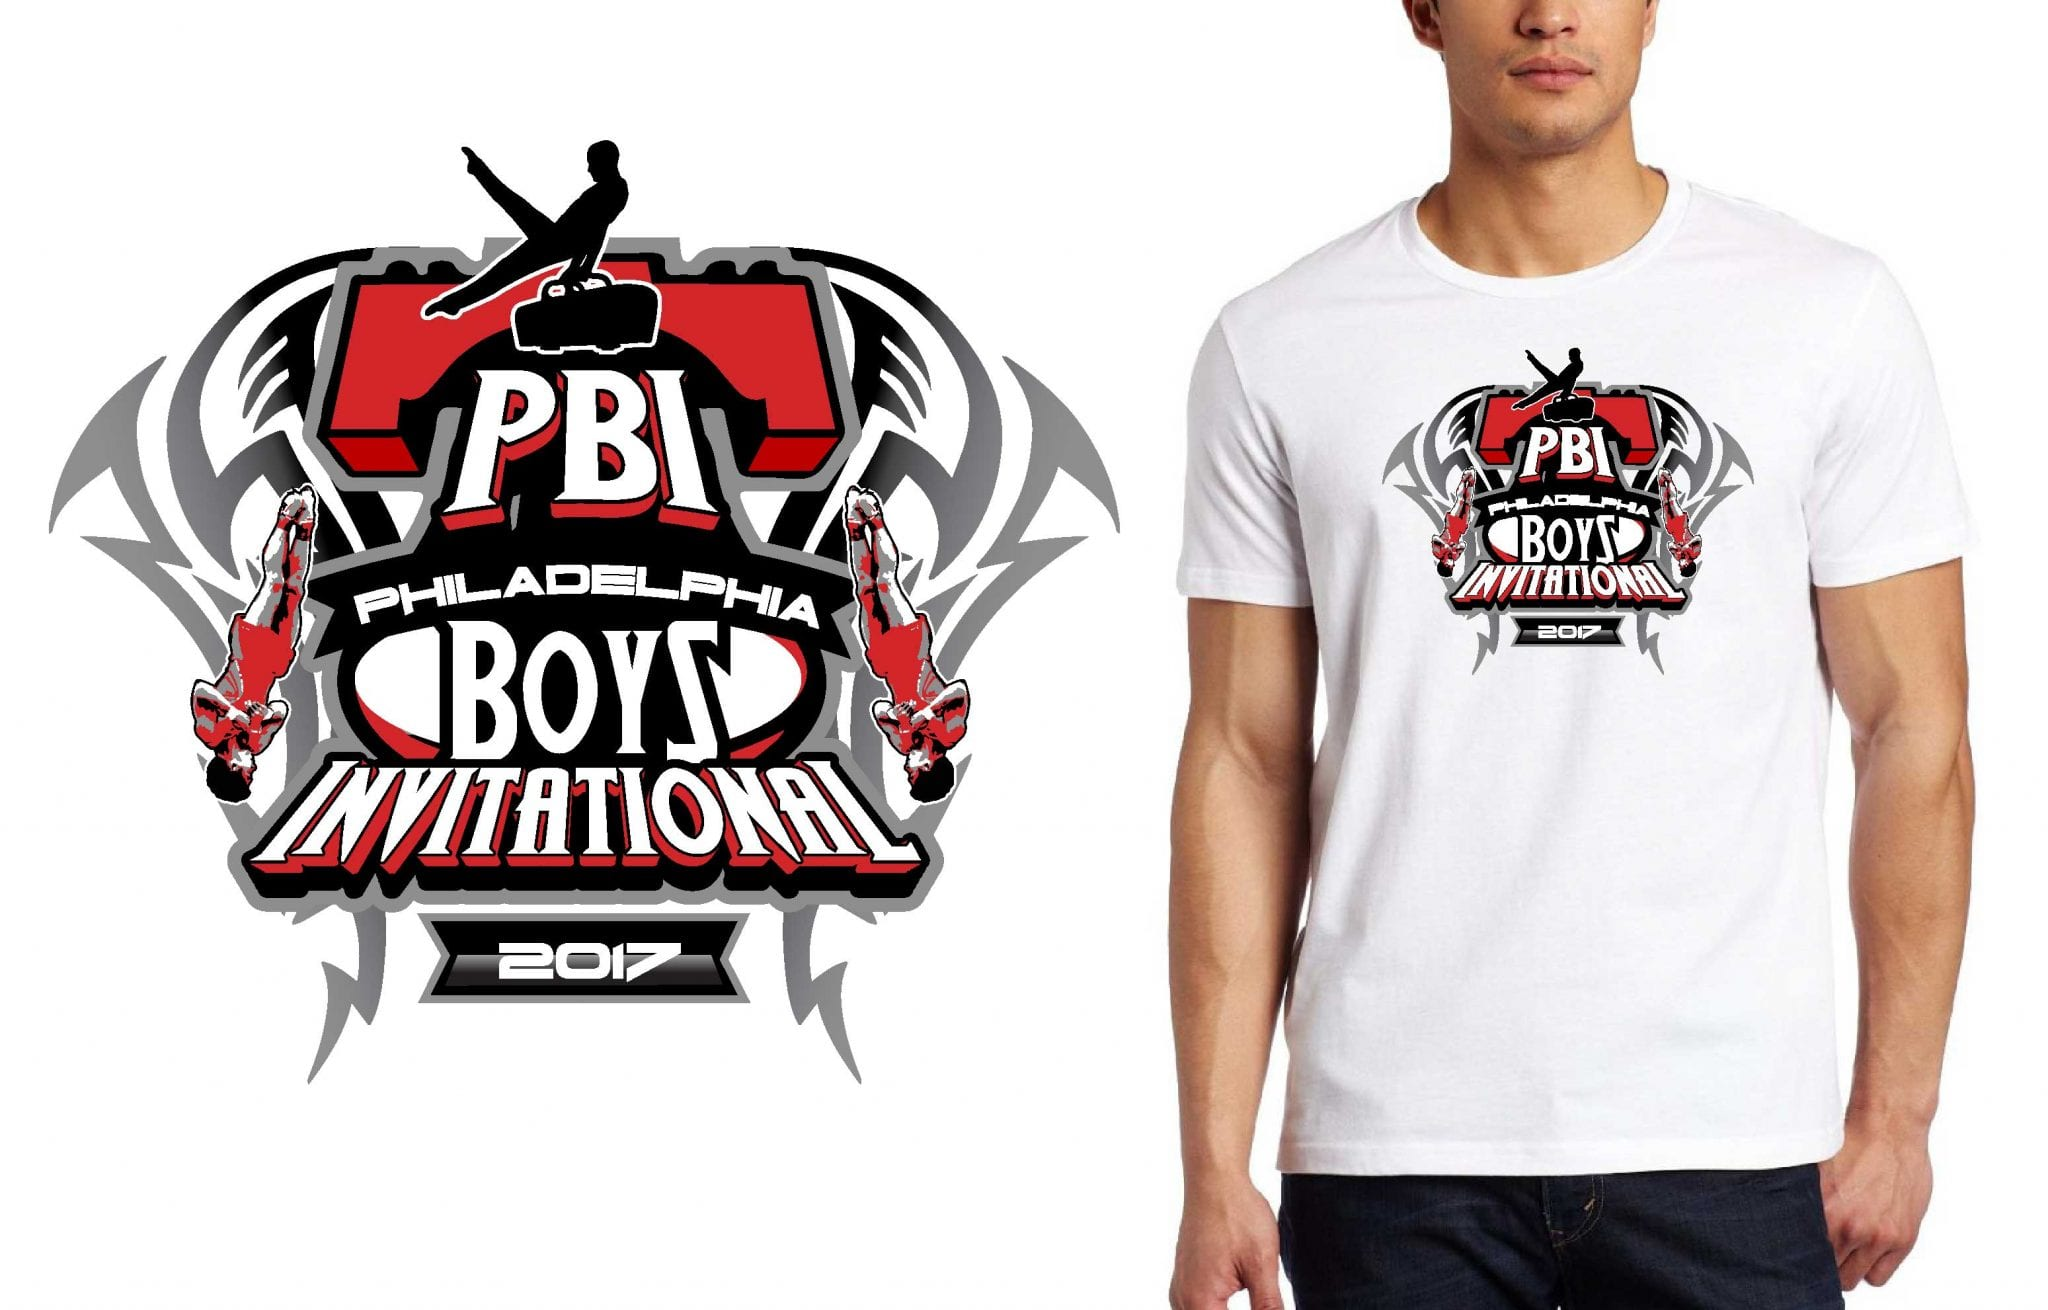 GYMNASTICS TSHIRT LOGO DESIGN Philadelphia-Boys-Invitational BY UrArtStudio